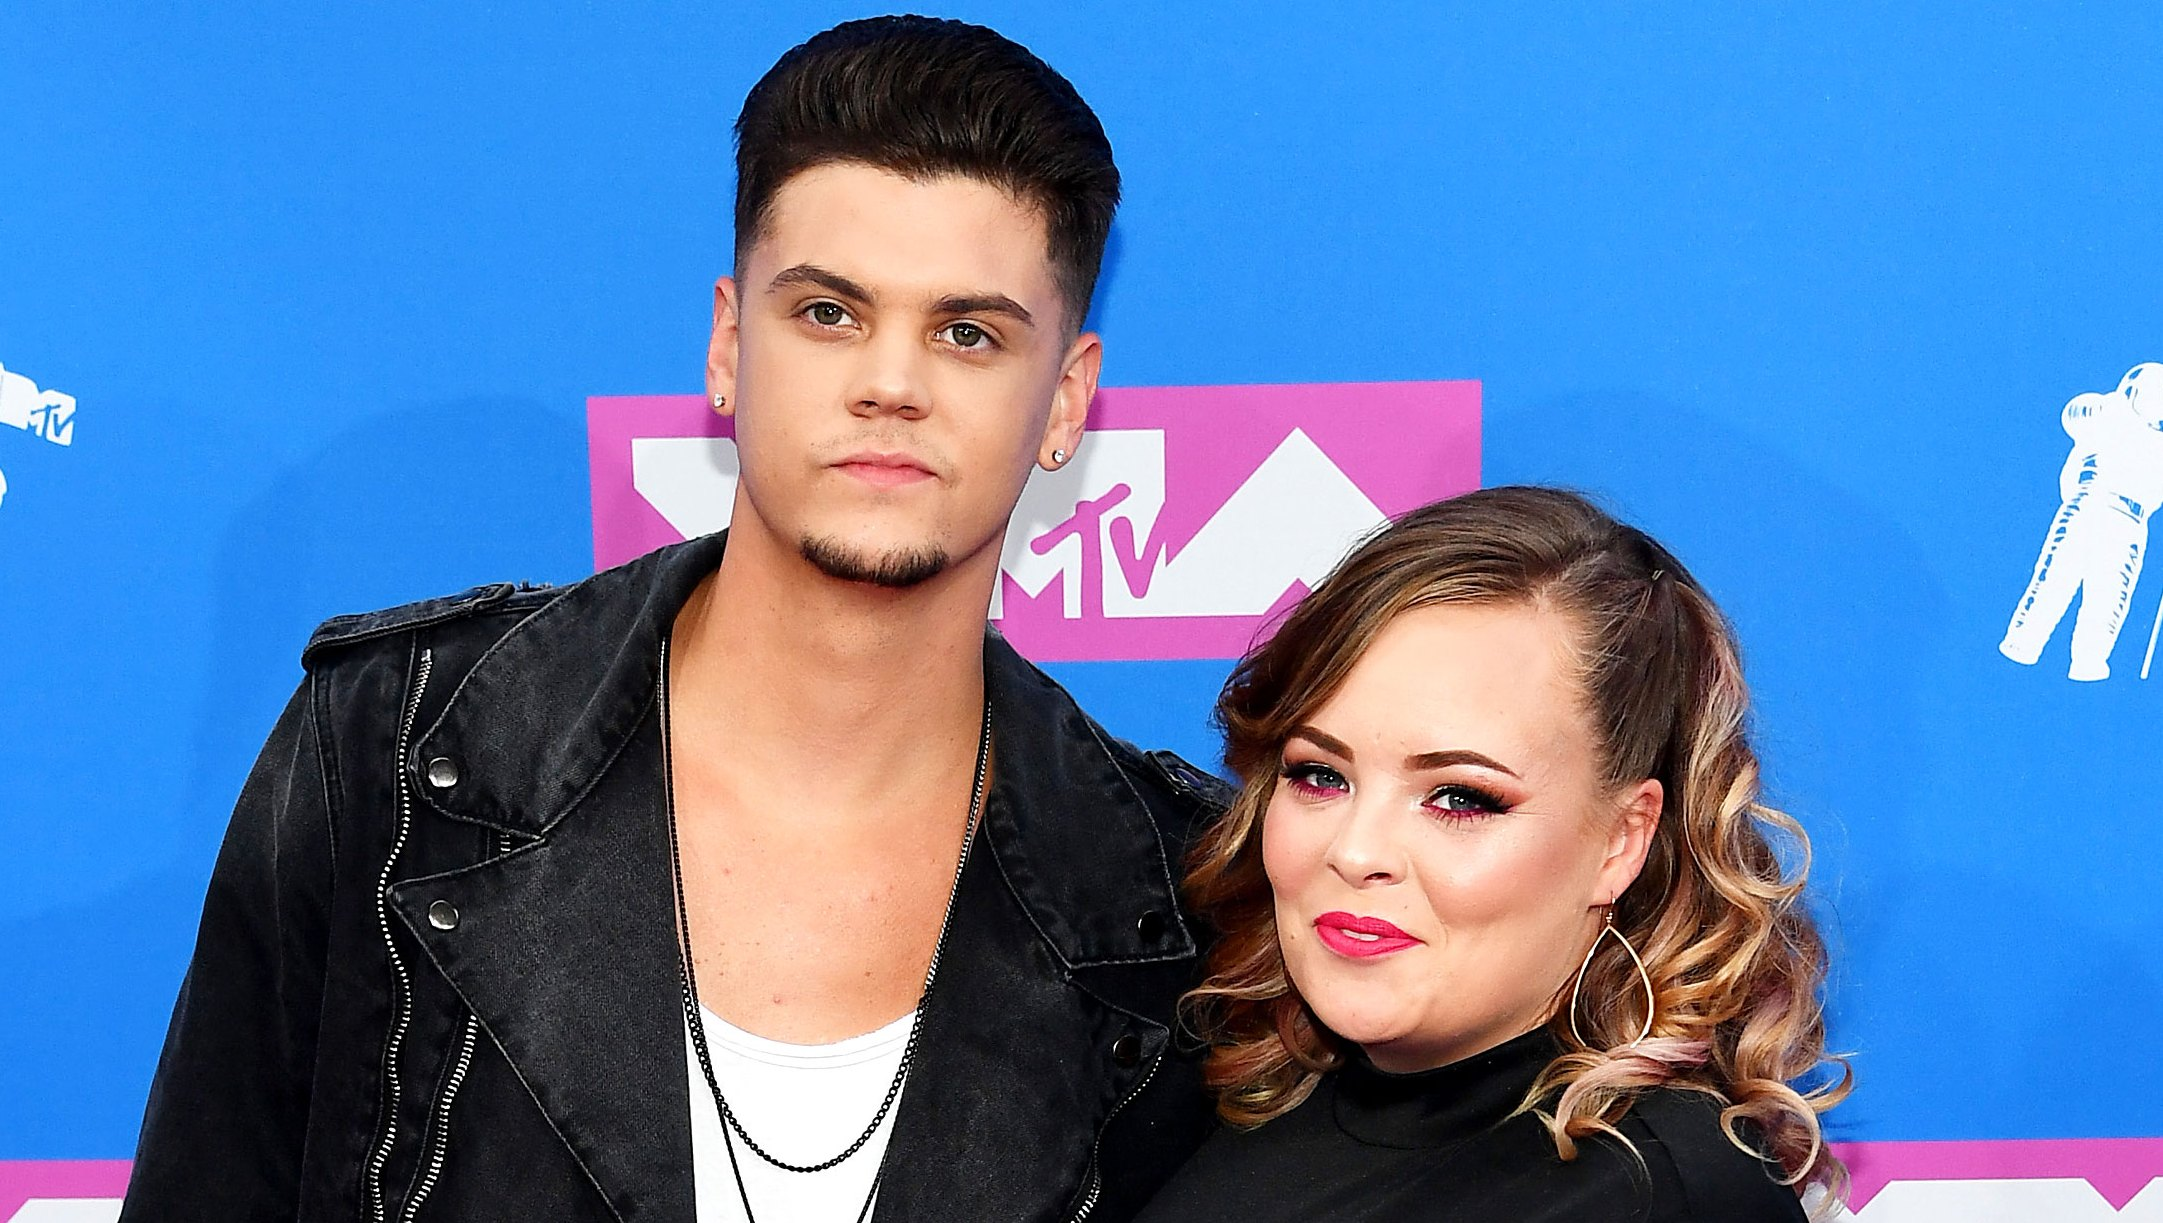 All Times Catelynn Lowell and Tyler Baltierra Have Clapped Back on Social Media